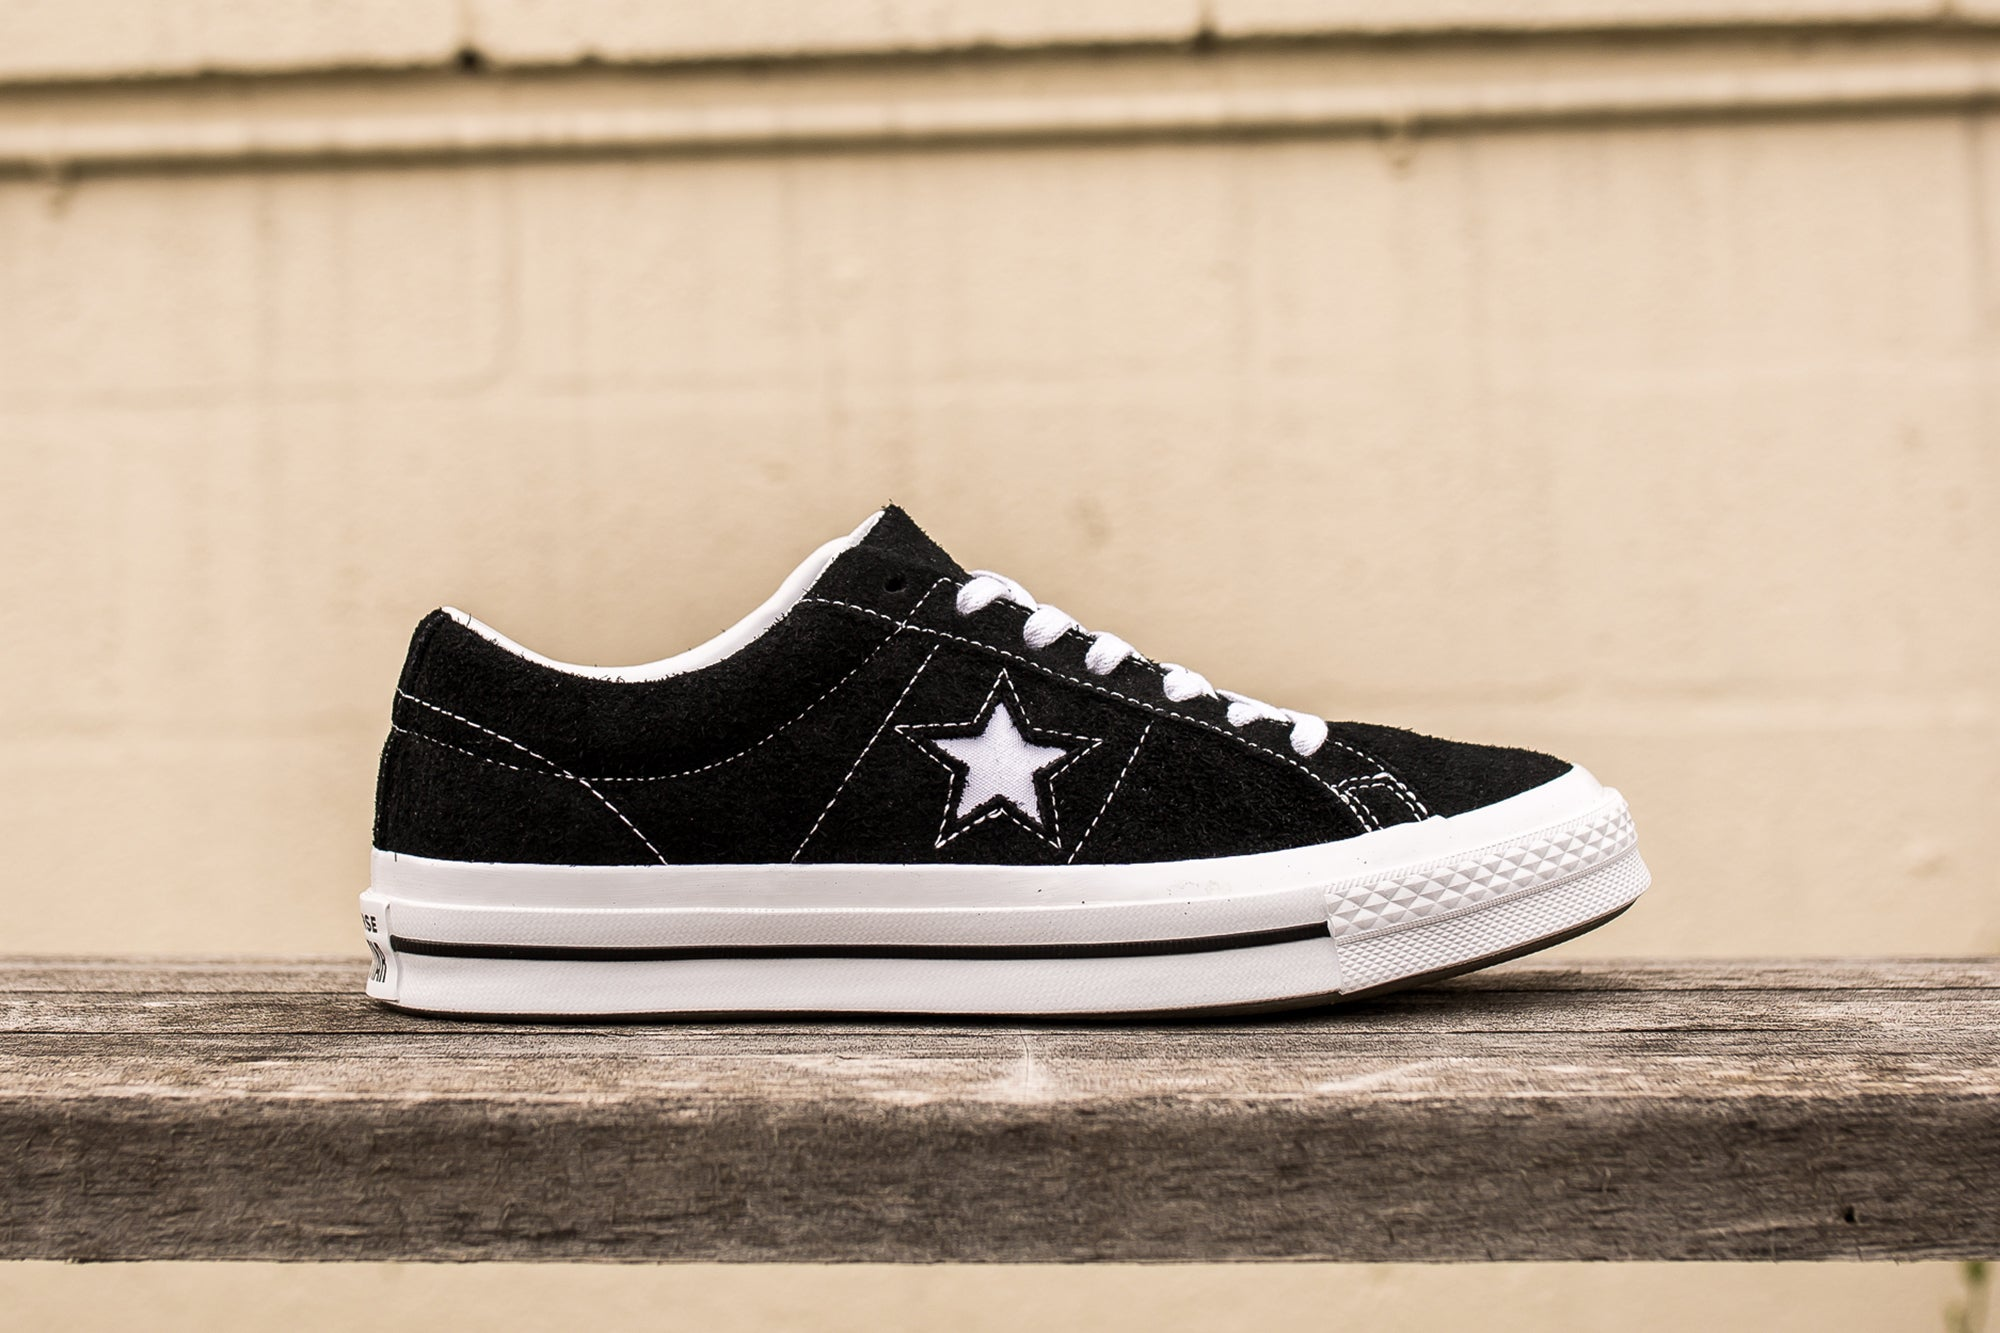 49beccfcc379 CONVERSE ONE STAR SUEDE LOW TOP - BLACK – PACKER SHOES